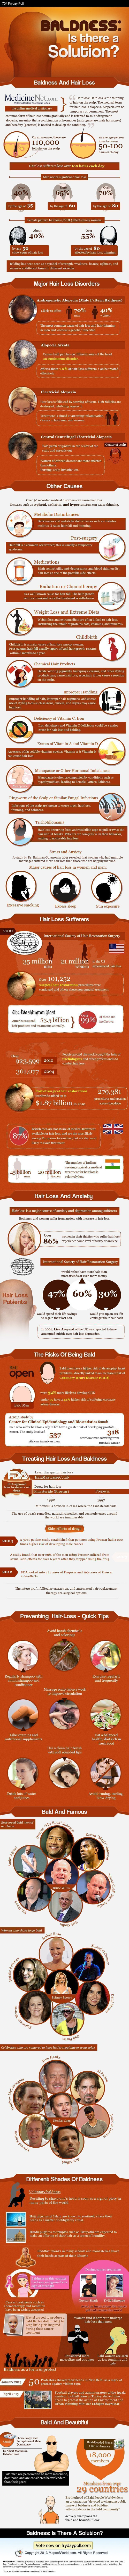 Find In-depth Review And Infographic About Baldness, Hair loss, Alopecia, Male Pattern Baldness, Female Pattern Baldness, Androgenetic Alopecia, Alopecia Areata, Cicatricial Alopecia, Central Centrifugal Cicatricial Alopecia, Hair loss Causes, Balding Cau http://tophairsgrowthtip.com/how-to-grow-natural-hair-fast-and-healthy/hair-growth-products-that-work/nutrafol-hair-capsules-review/ #hairlossinfographic #hairgrowth